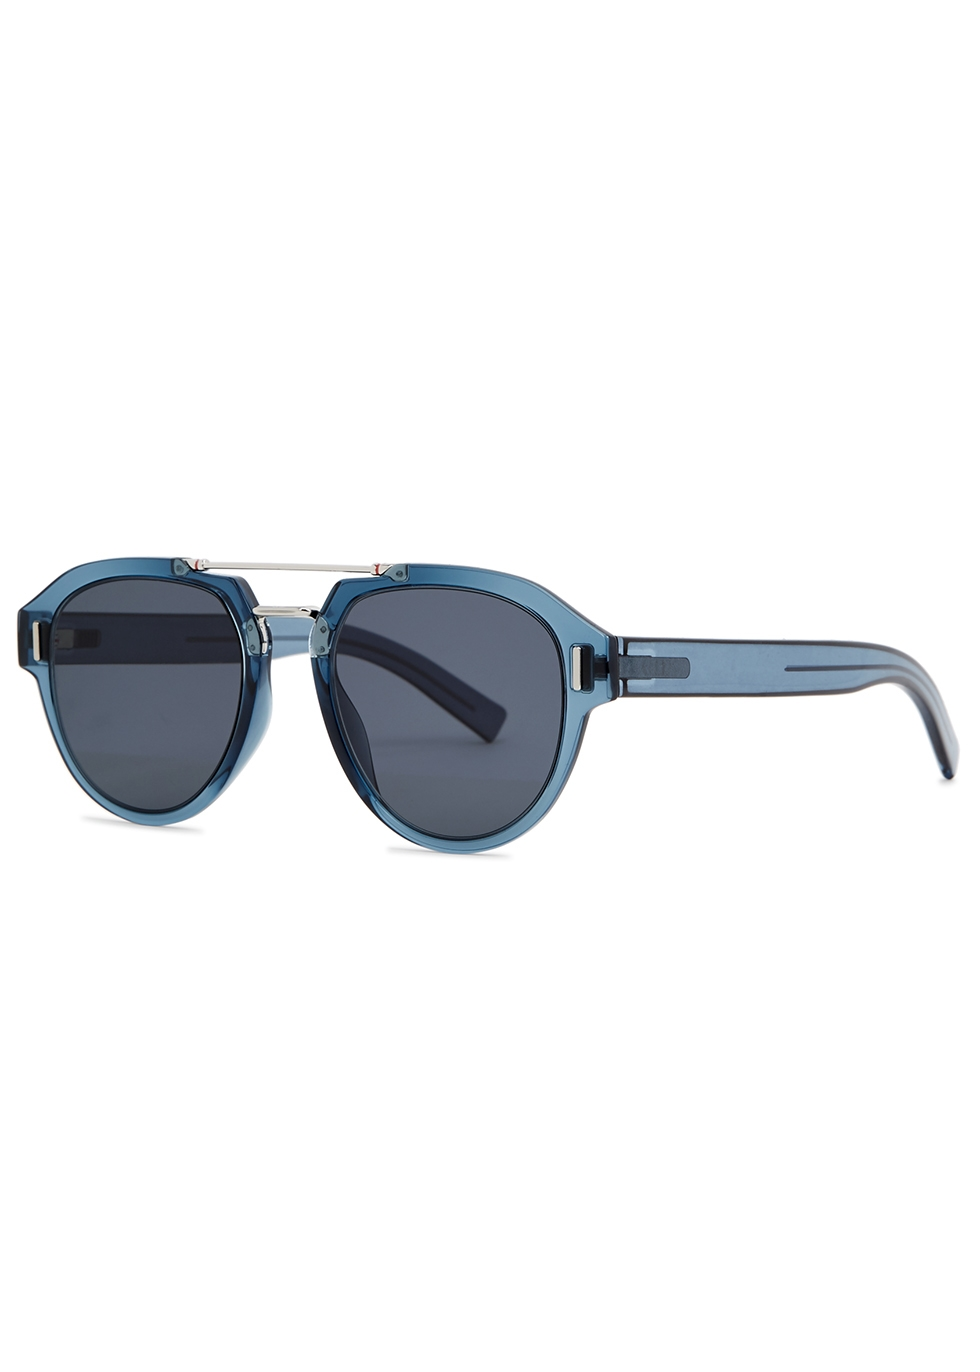 DiorFraction5 aviator-style sunglasses - Dior Homme